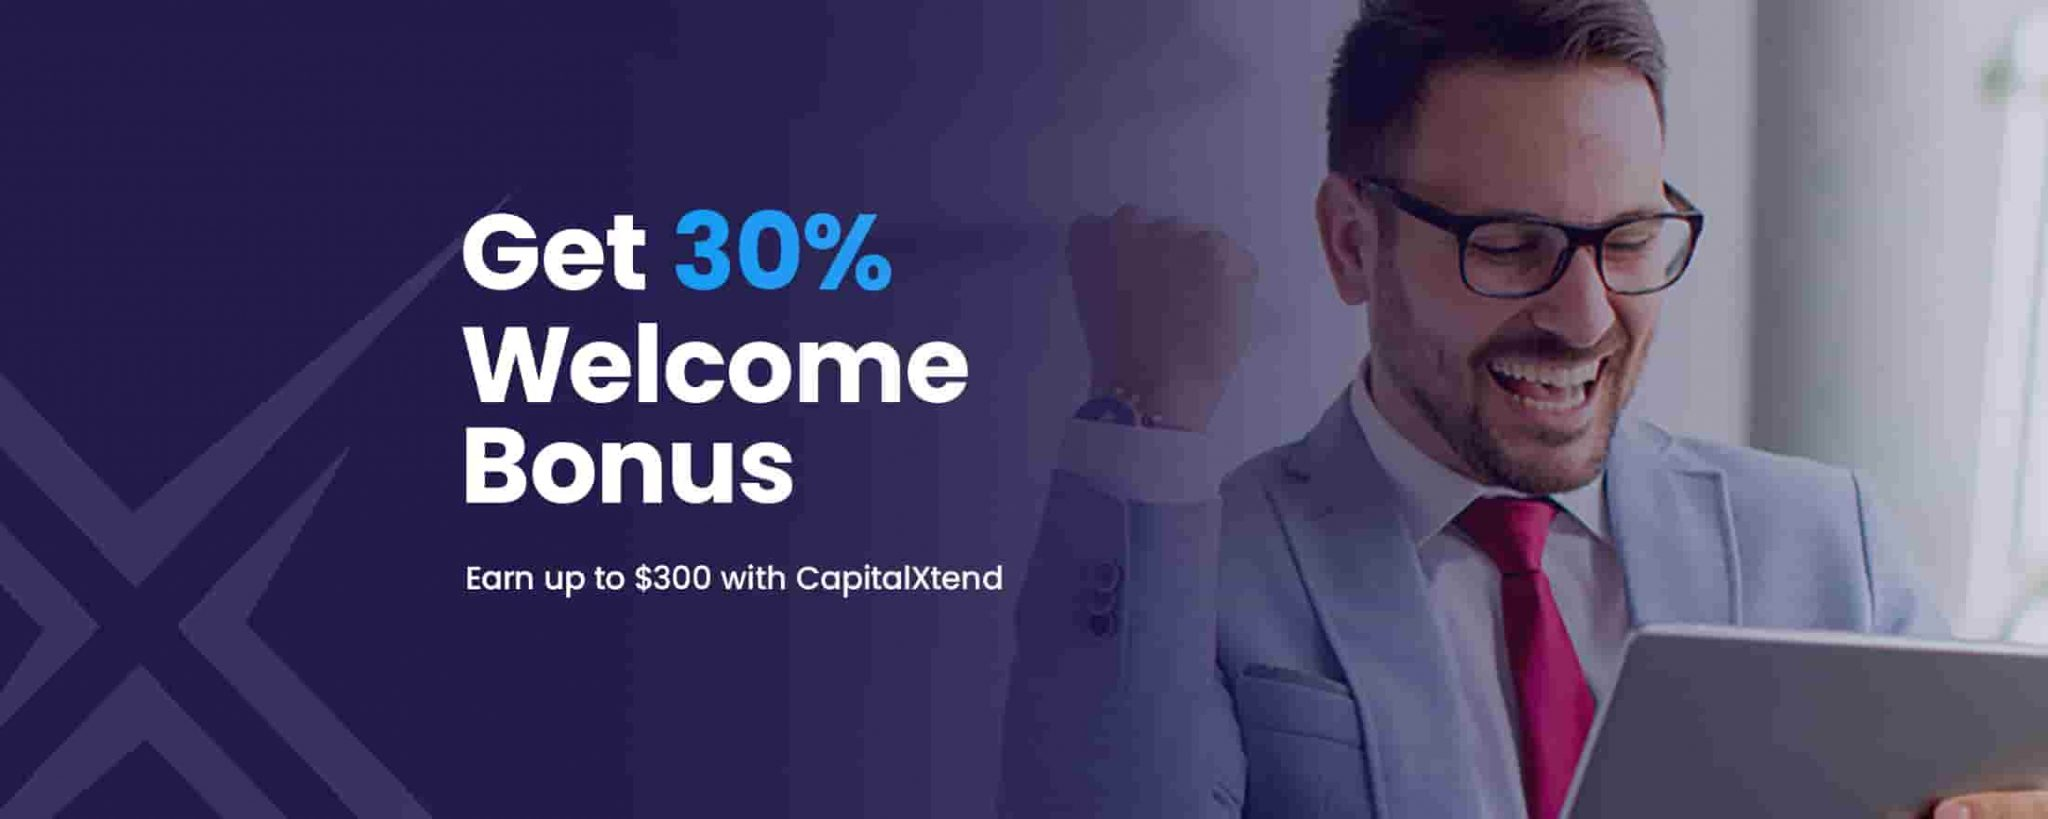 Capitalxtend 30% bonus